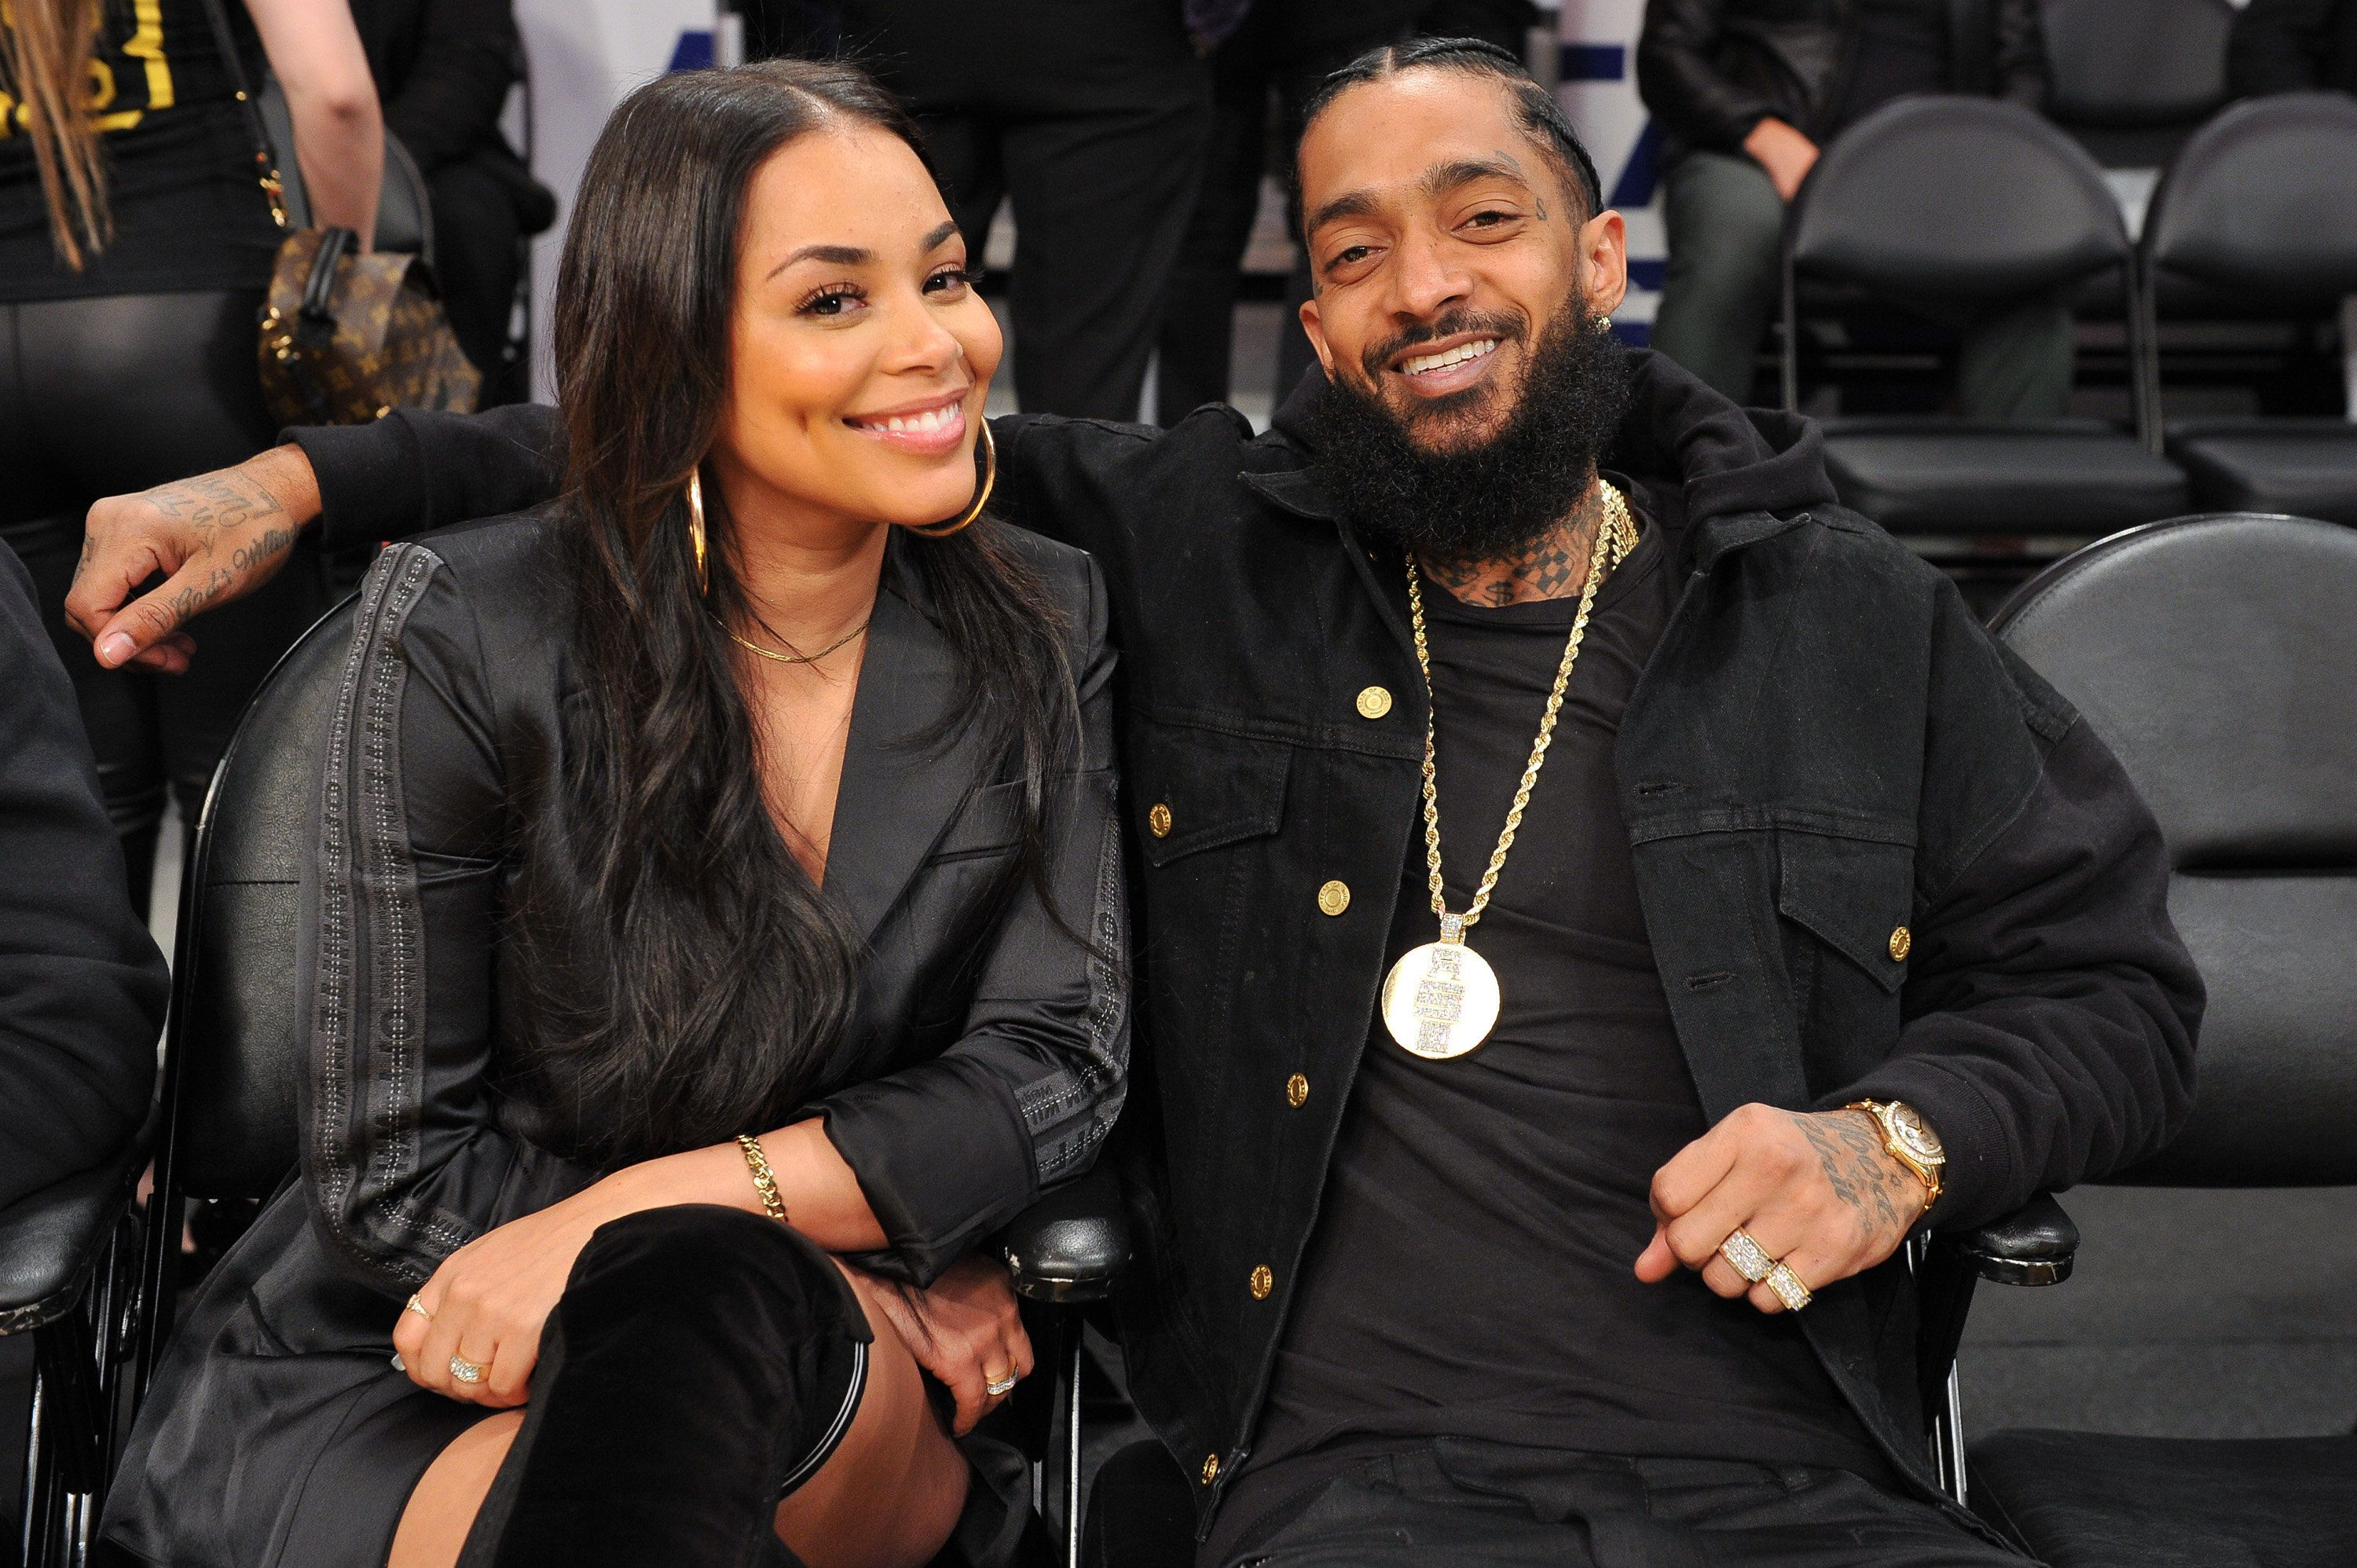 LOS ANGELES, CALIFORNIA - NOVEMBER 14: Nipsey Hussle and Lauren London attend a basketball game between the Los Angeles Lakers and the Portland Trail Blazers  at Staples Center on November 14, 2018 in Los Angeles, California. (Photo by Allen Berezovsky/Getty Images)